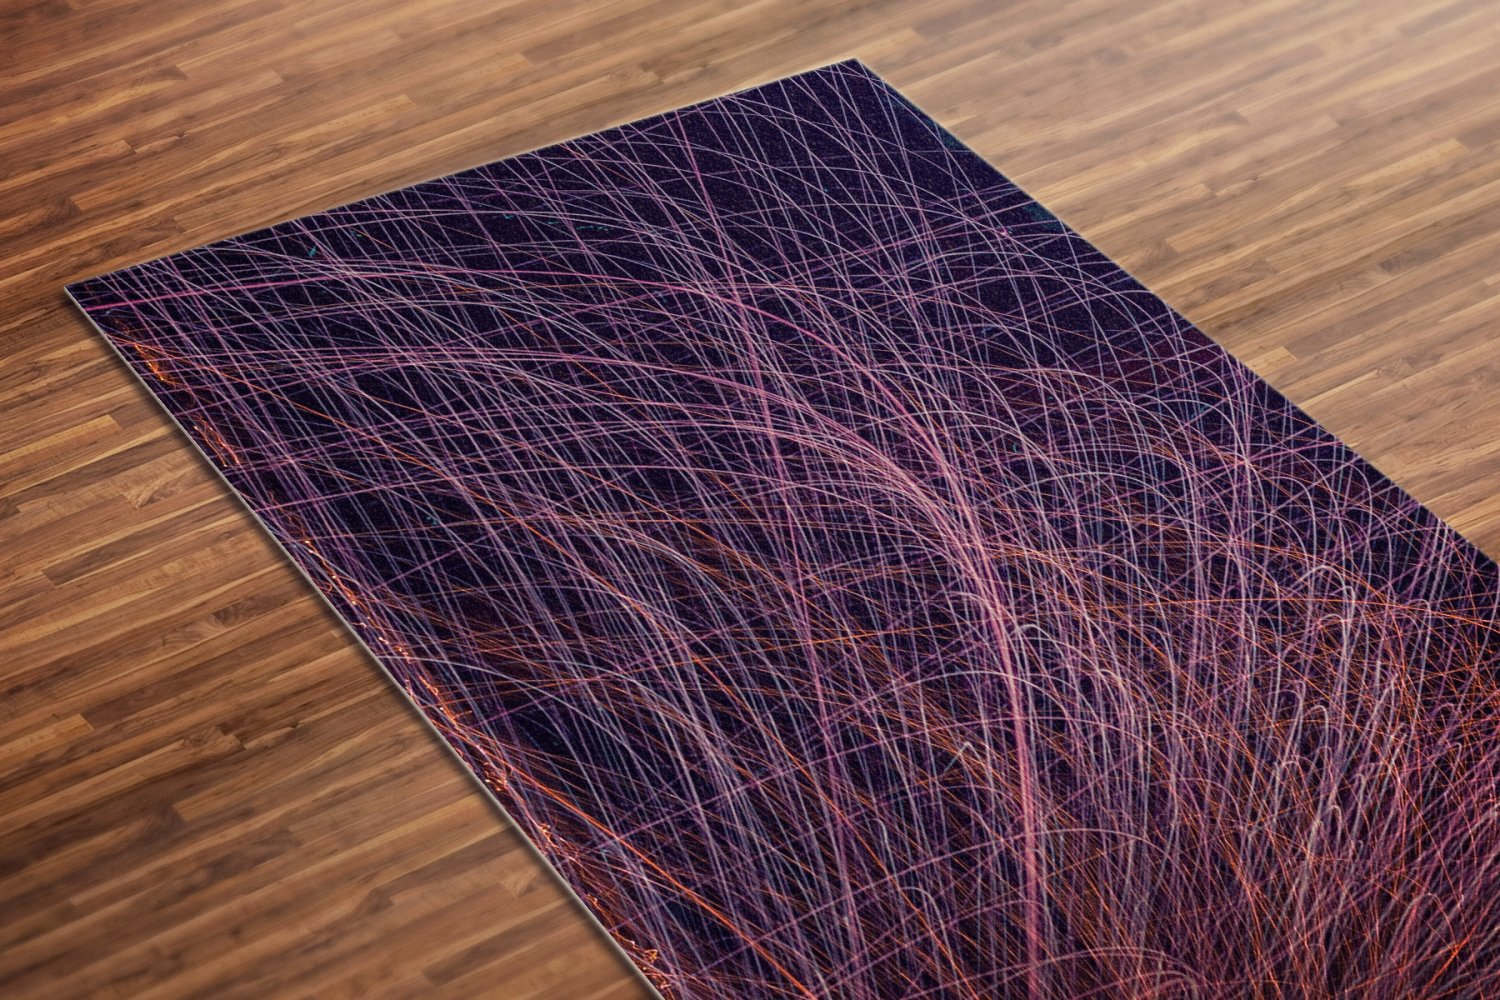 Sparks Printed Yoga Mat Thick 5 mm 24 x 72 Pilates Red Decor Rug Gift Fitness Exercise Meditation